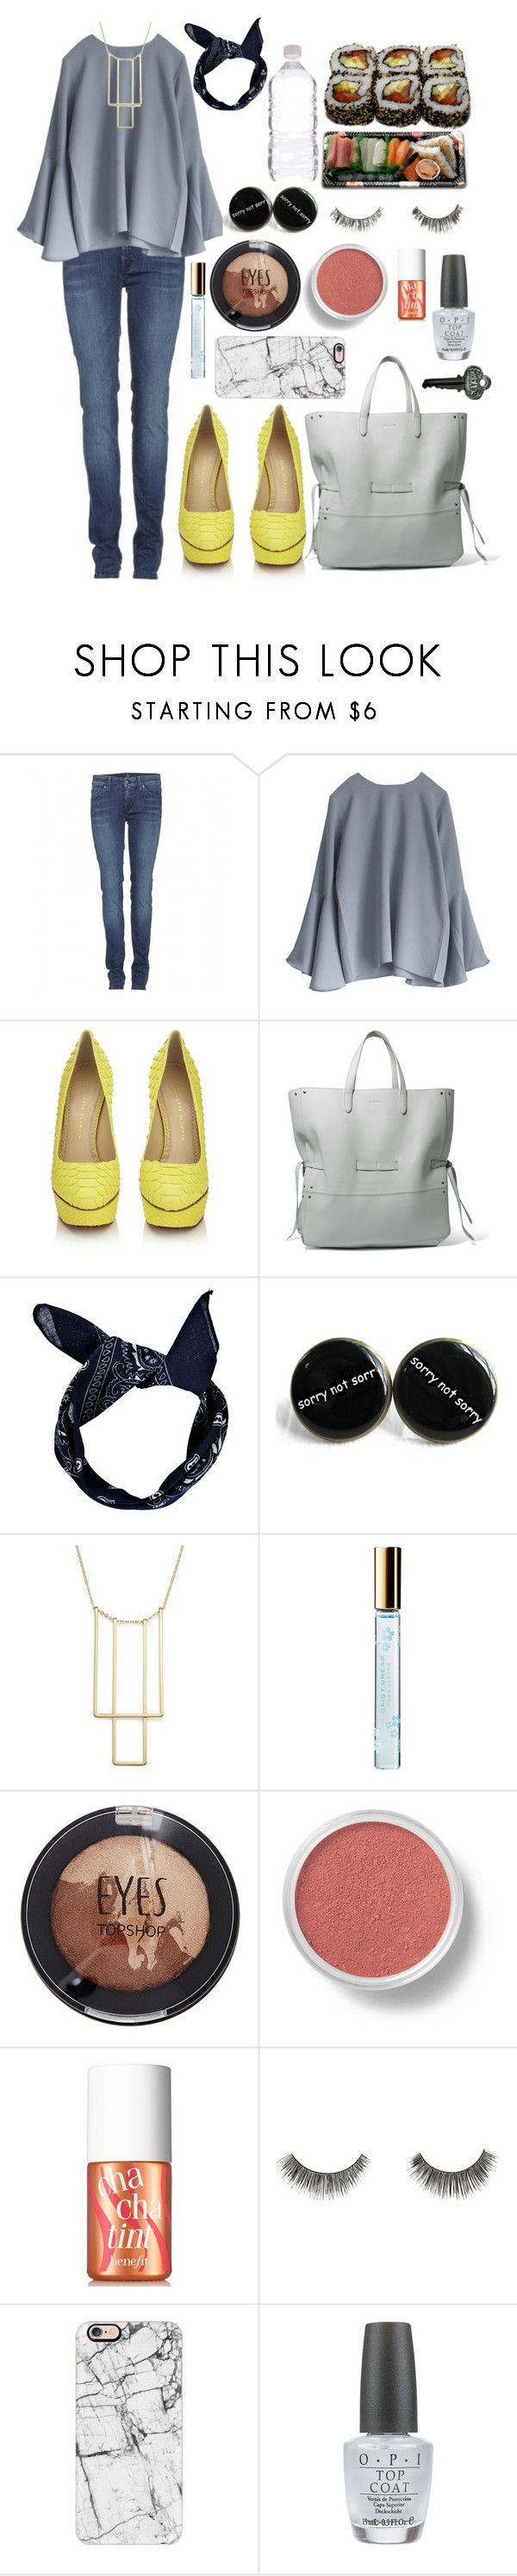 """""""Untitled #291"""" by racita on Polyvore featuring 7 For All Mankind, Charlotte Olympia, Jura, Jil Sander, Boohoo, Bloomingdale's, Marc Jacobs, Topshop, Bare Escentuals and Benefit"""